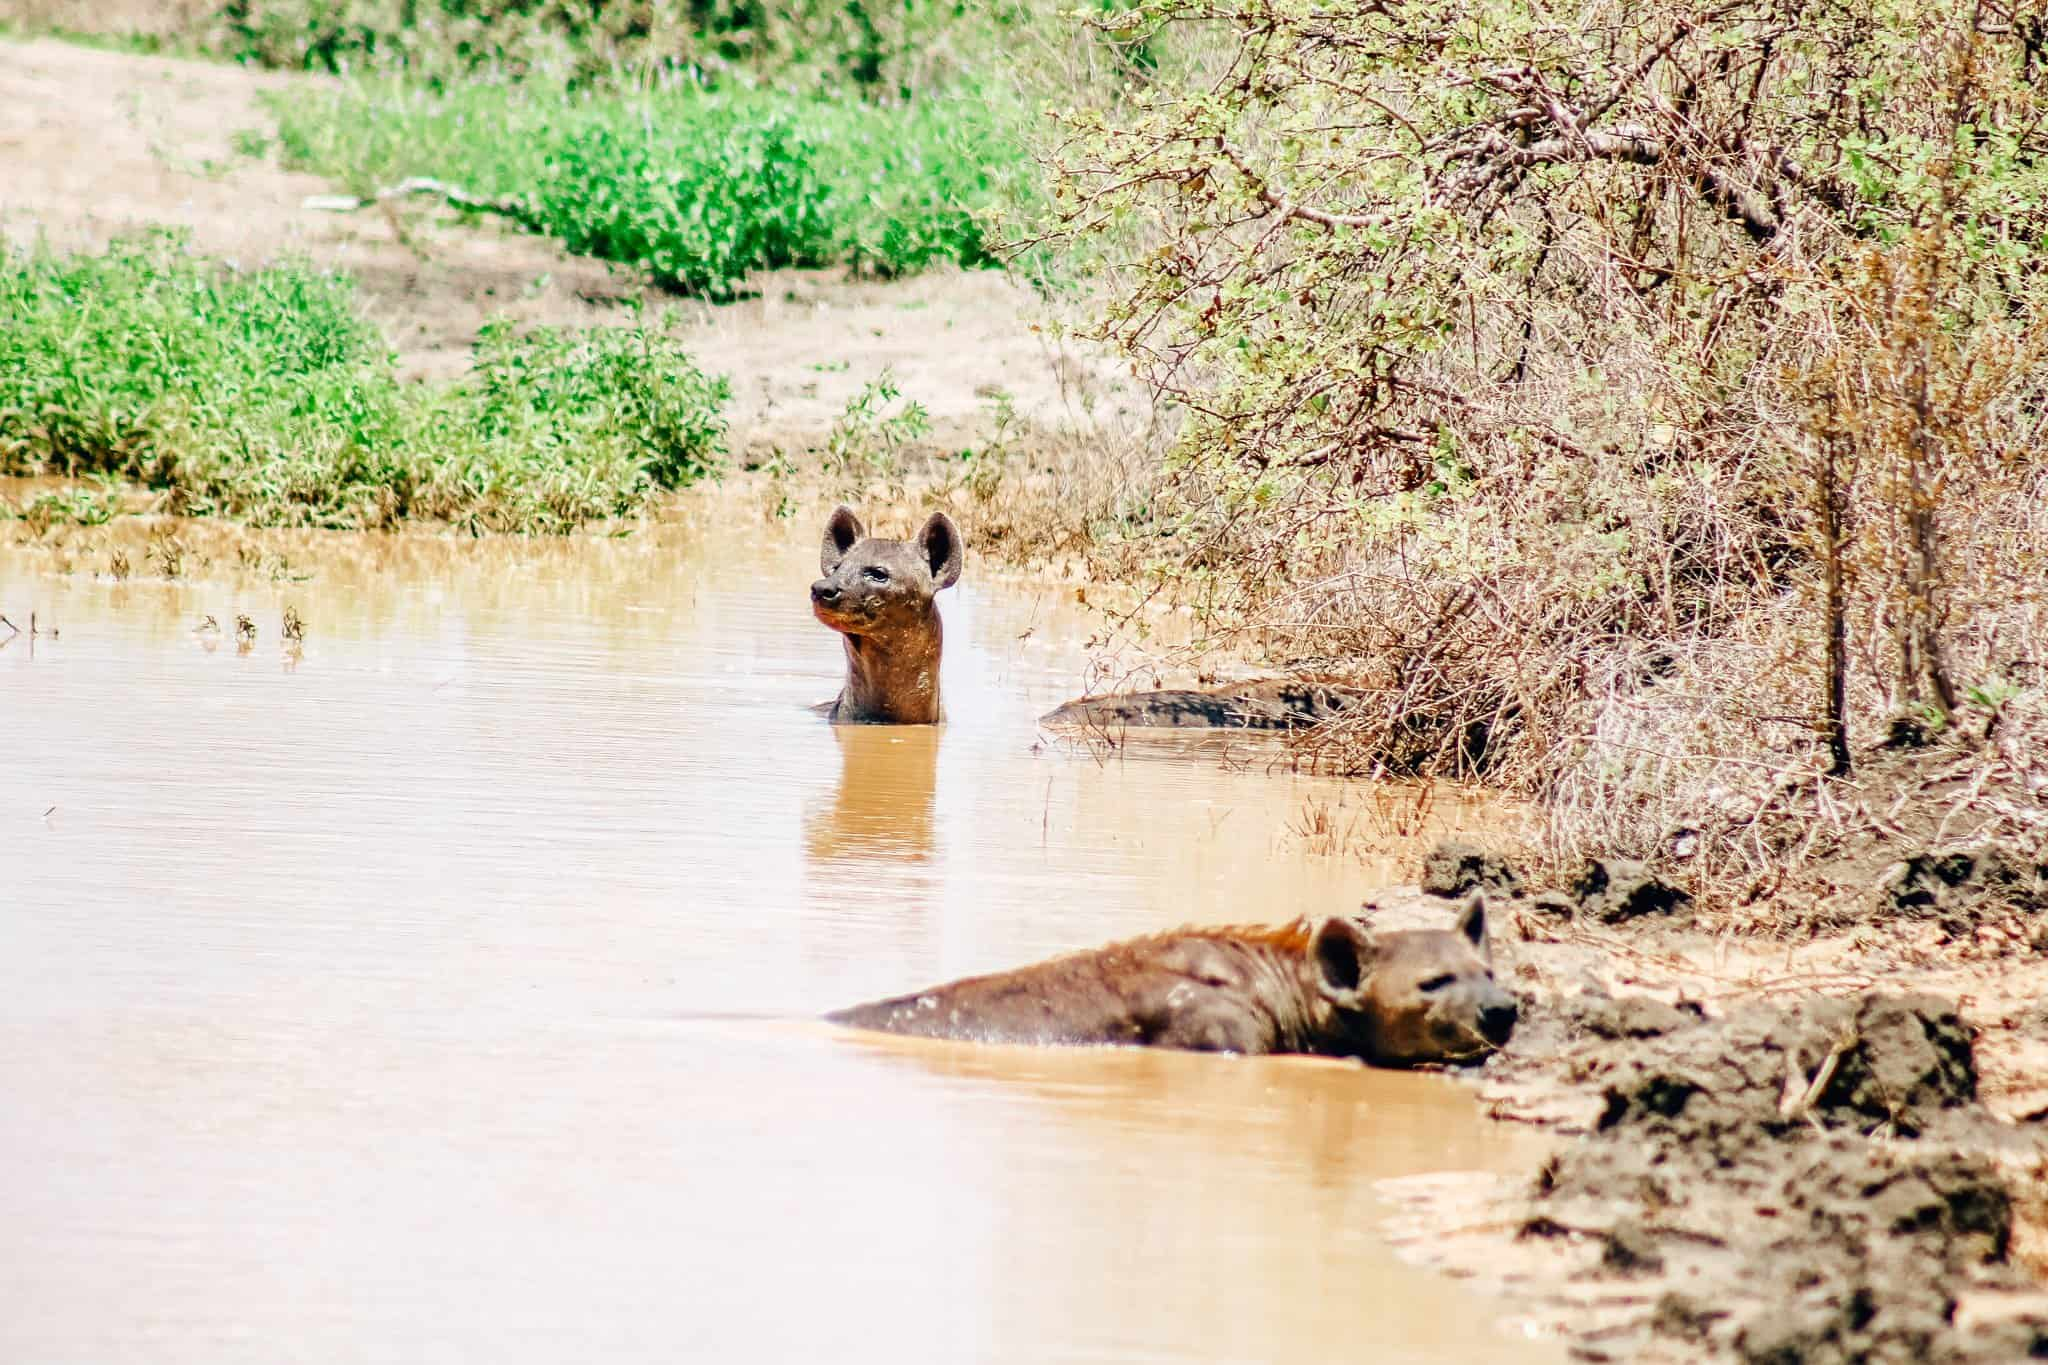 Two Hyenas in Water on African Safari Drive in the Selous Game Reserve